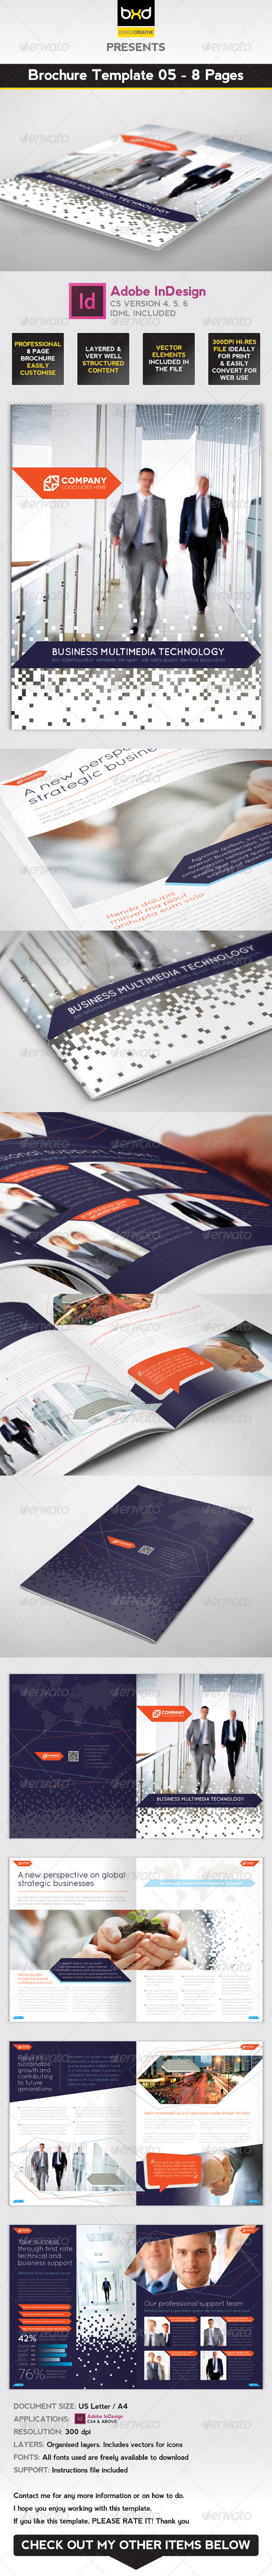 Brochure Template - InDesign 8 Page Layout 05 - Corporate Brochures